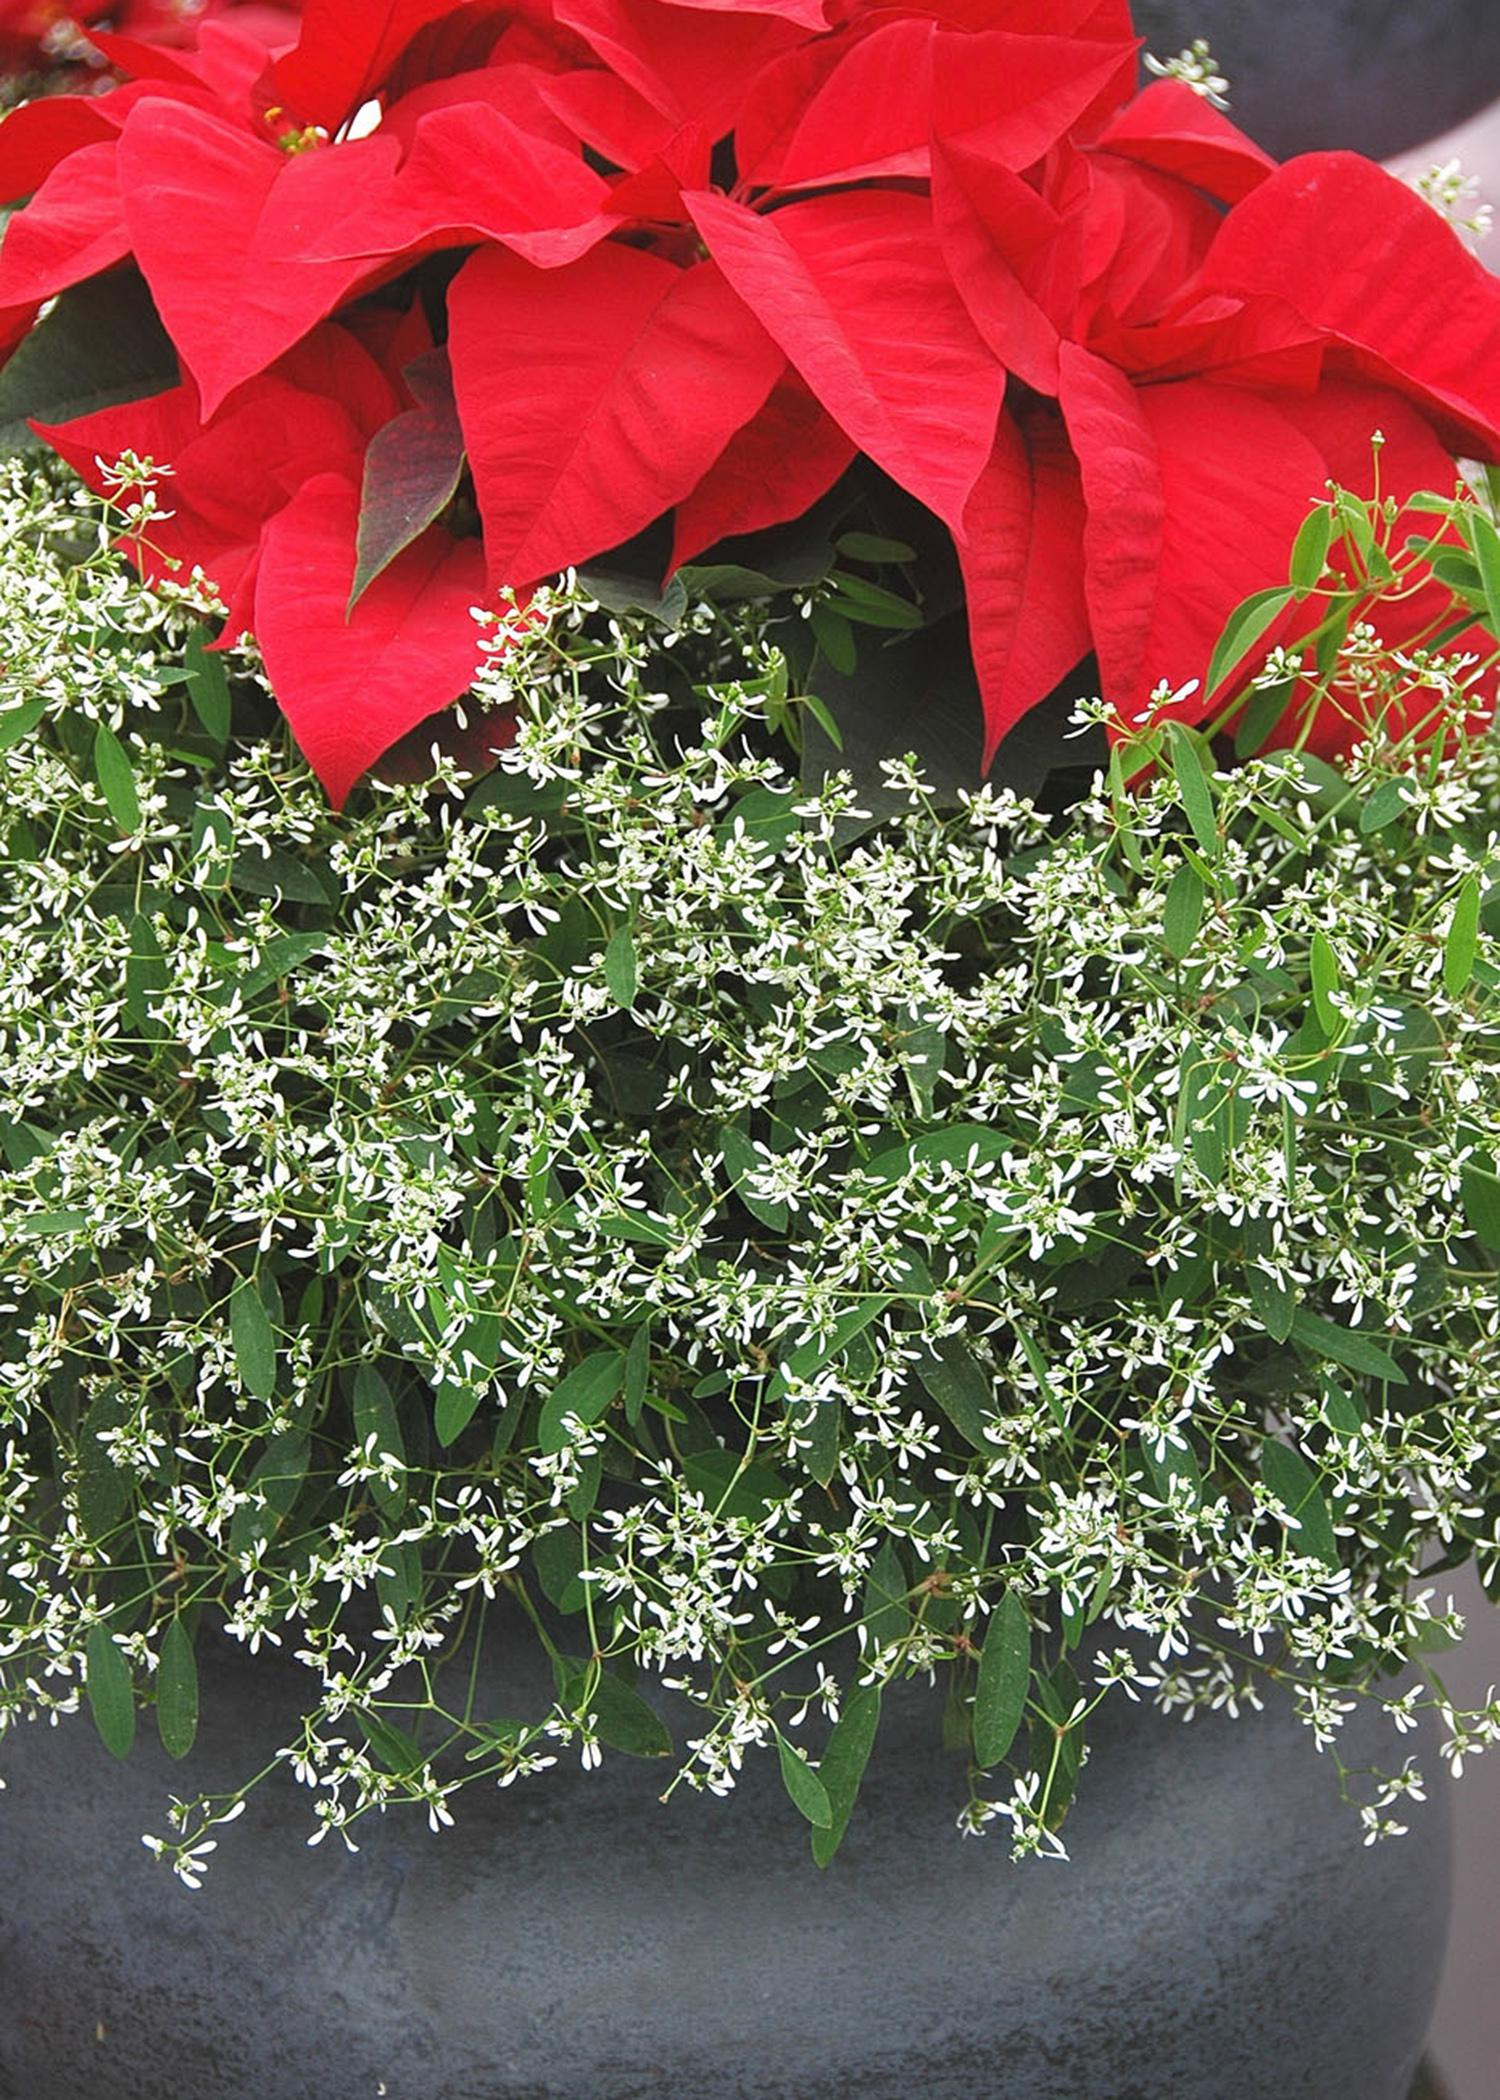 The hundreds of tiny, white flowers of Diamond Frost provide the perfect contrast to a favorite poinsettia color grouped together in one container. (File Photo/ MSU Extension)